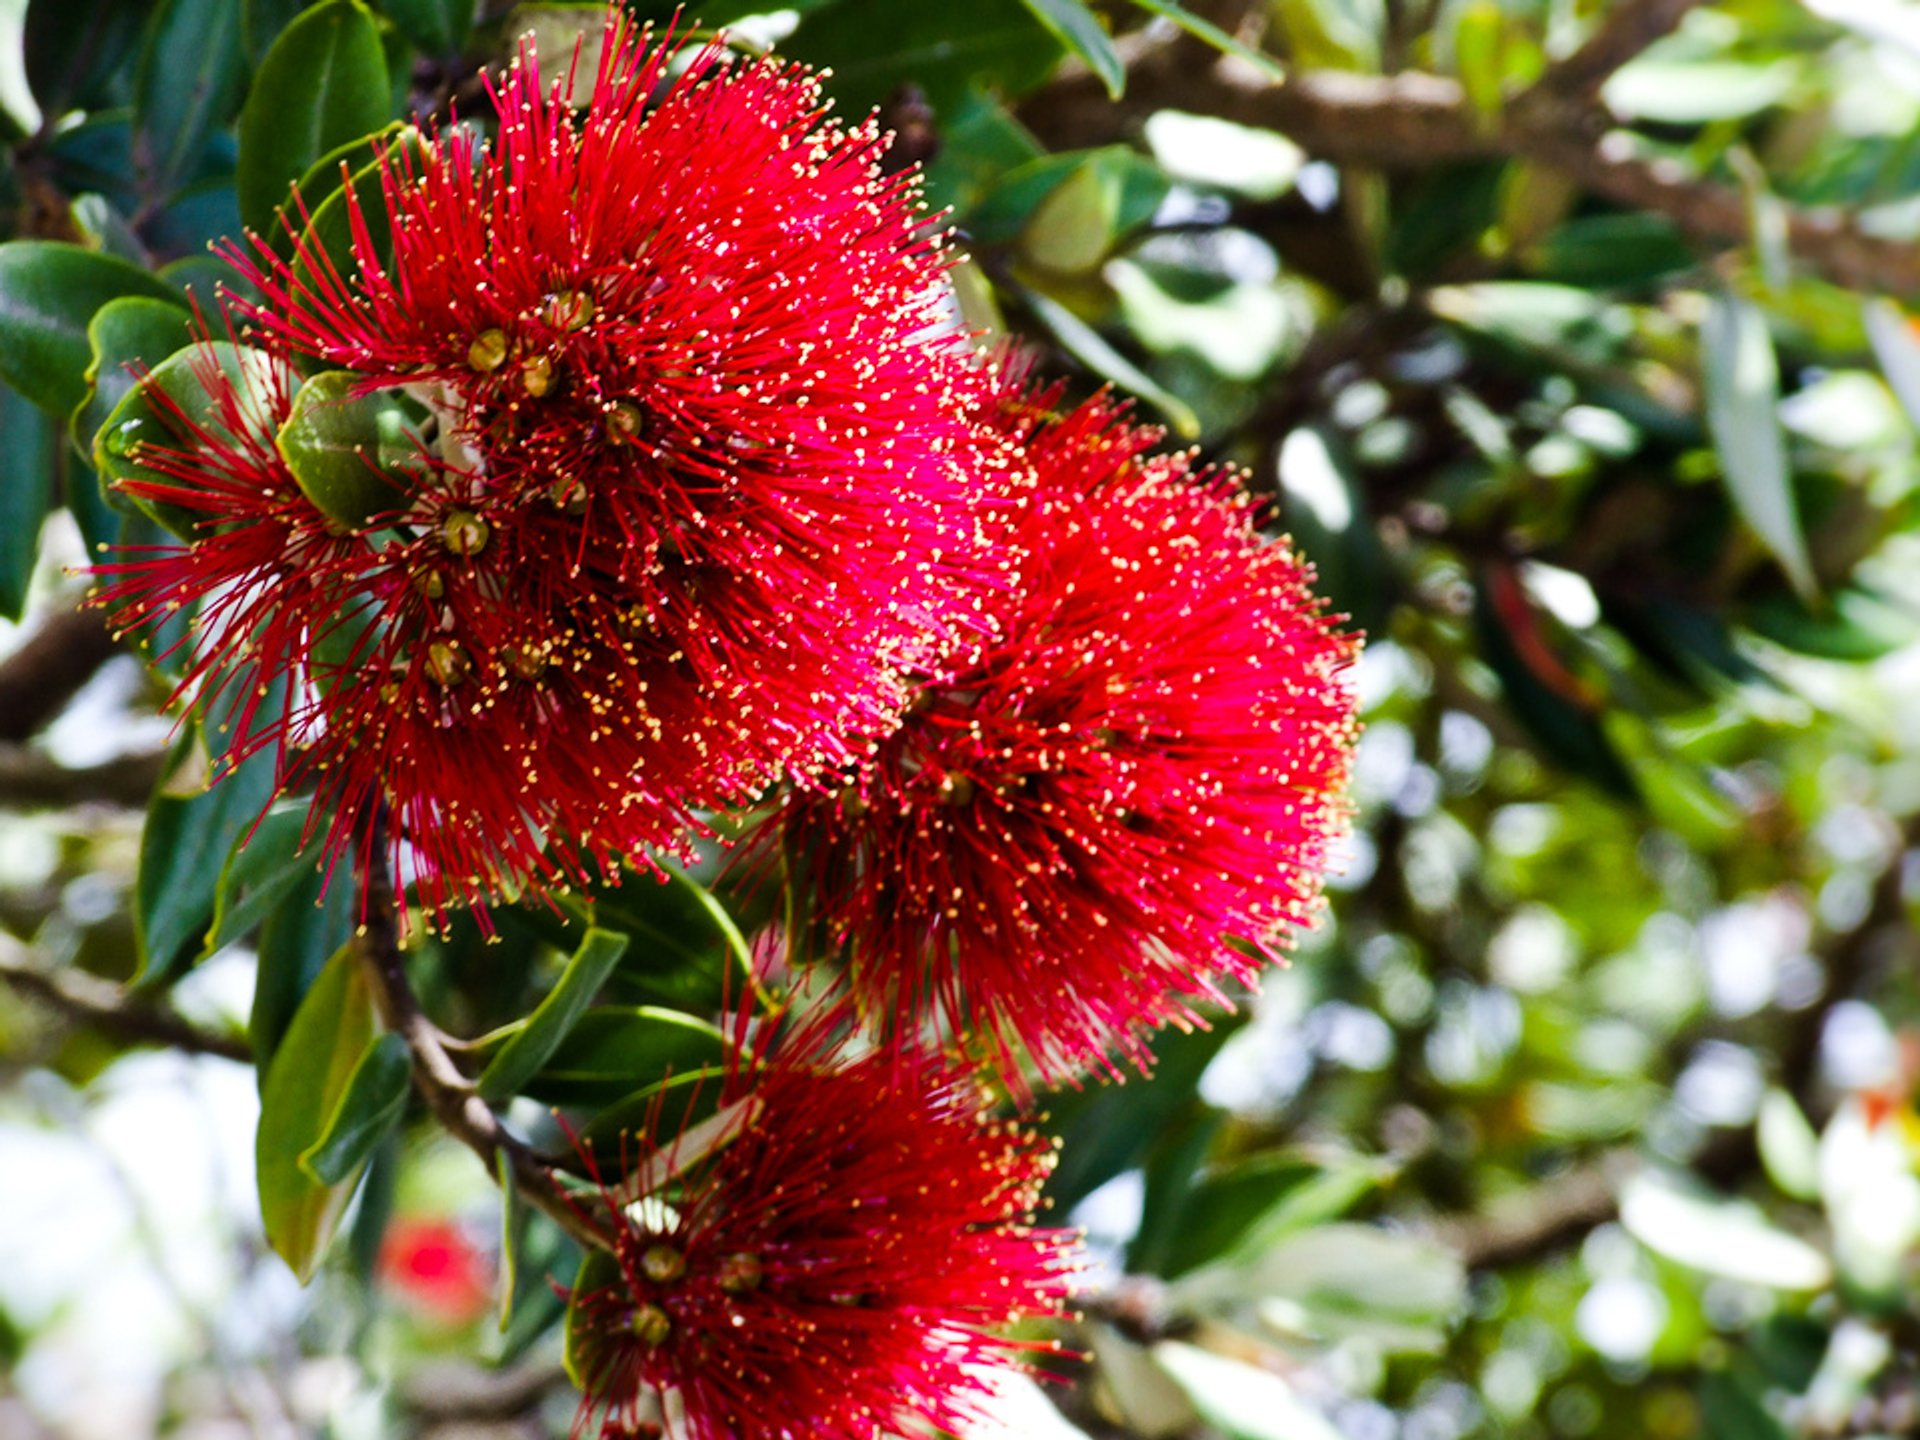 Pohutukawa Tree in New Zealand 2019 - Best Time